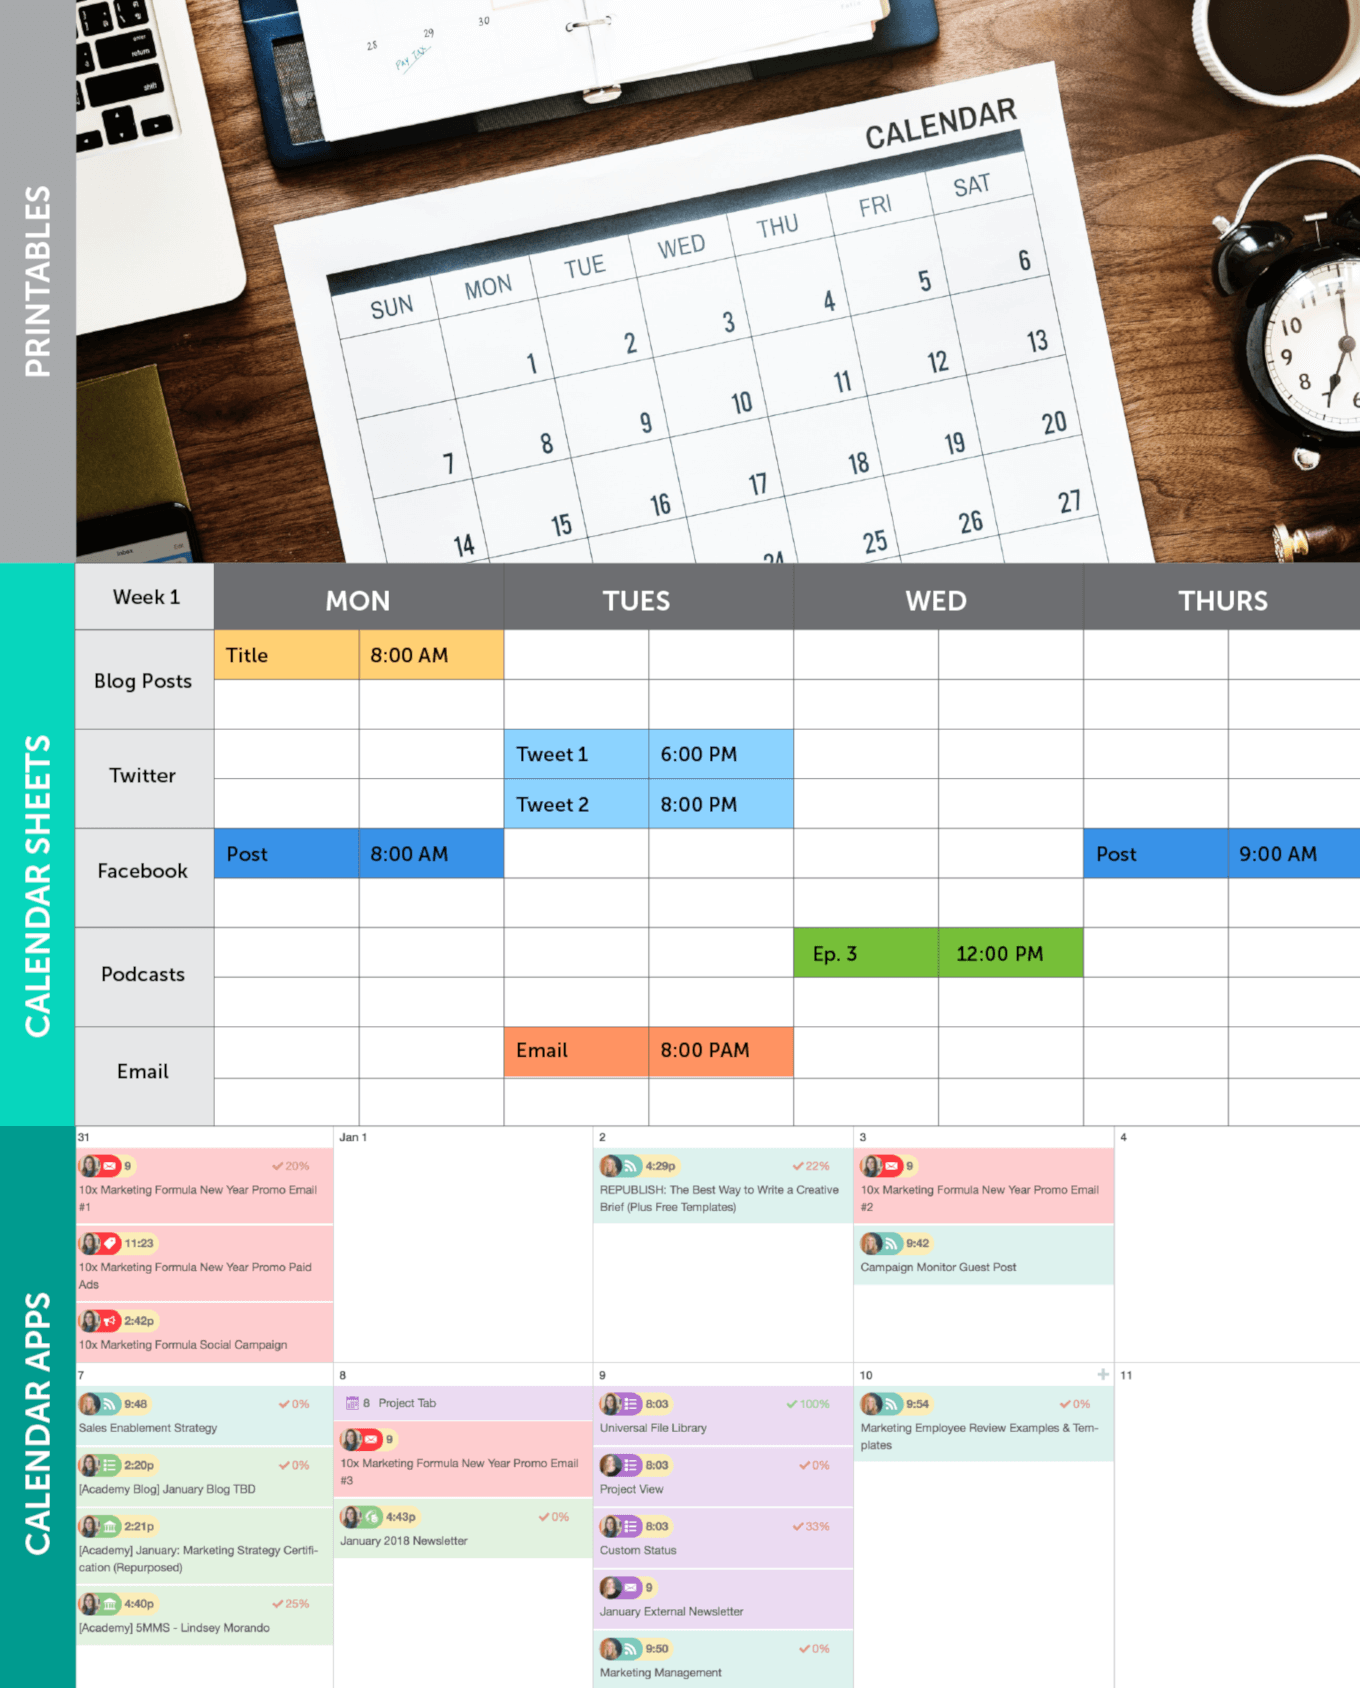 Example of 3 Different Types of Content Calendars